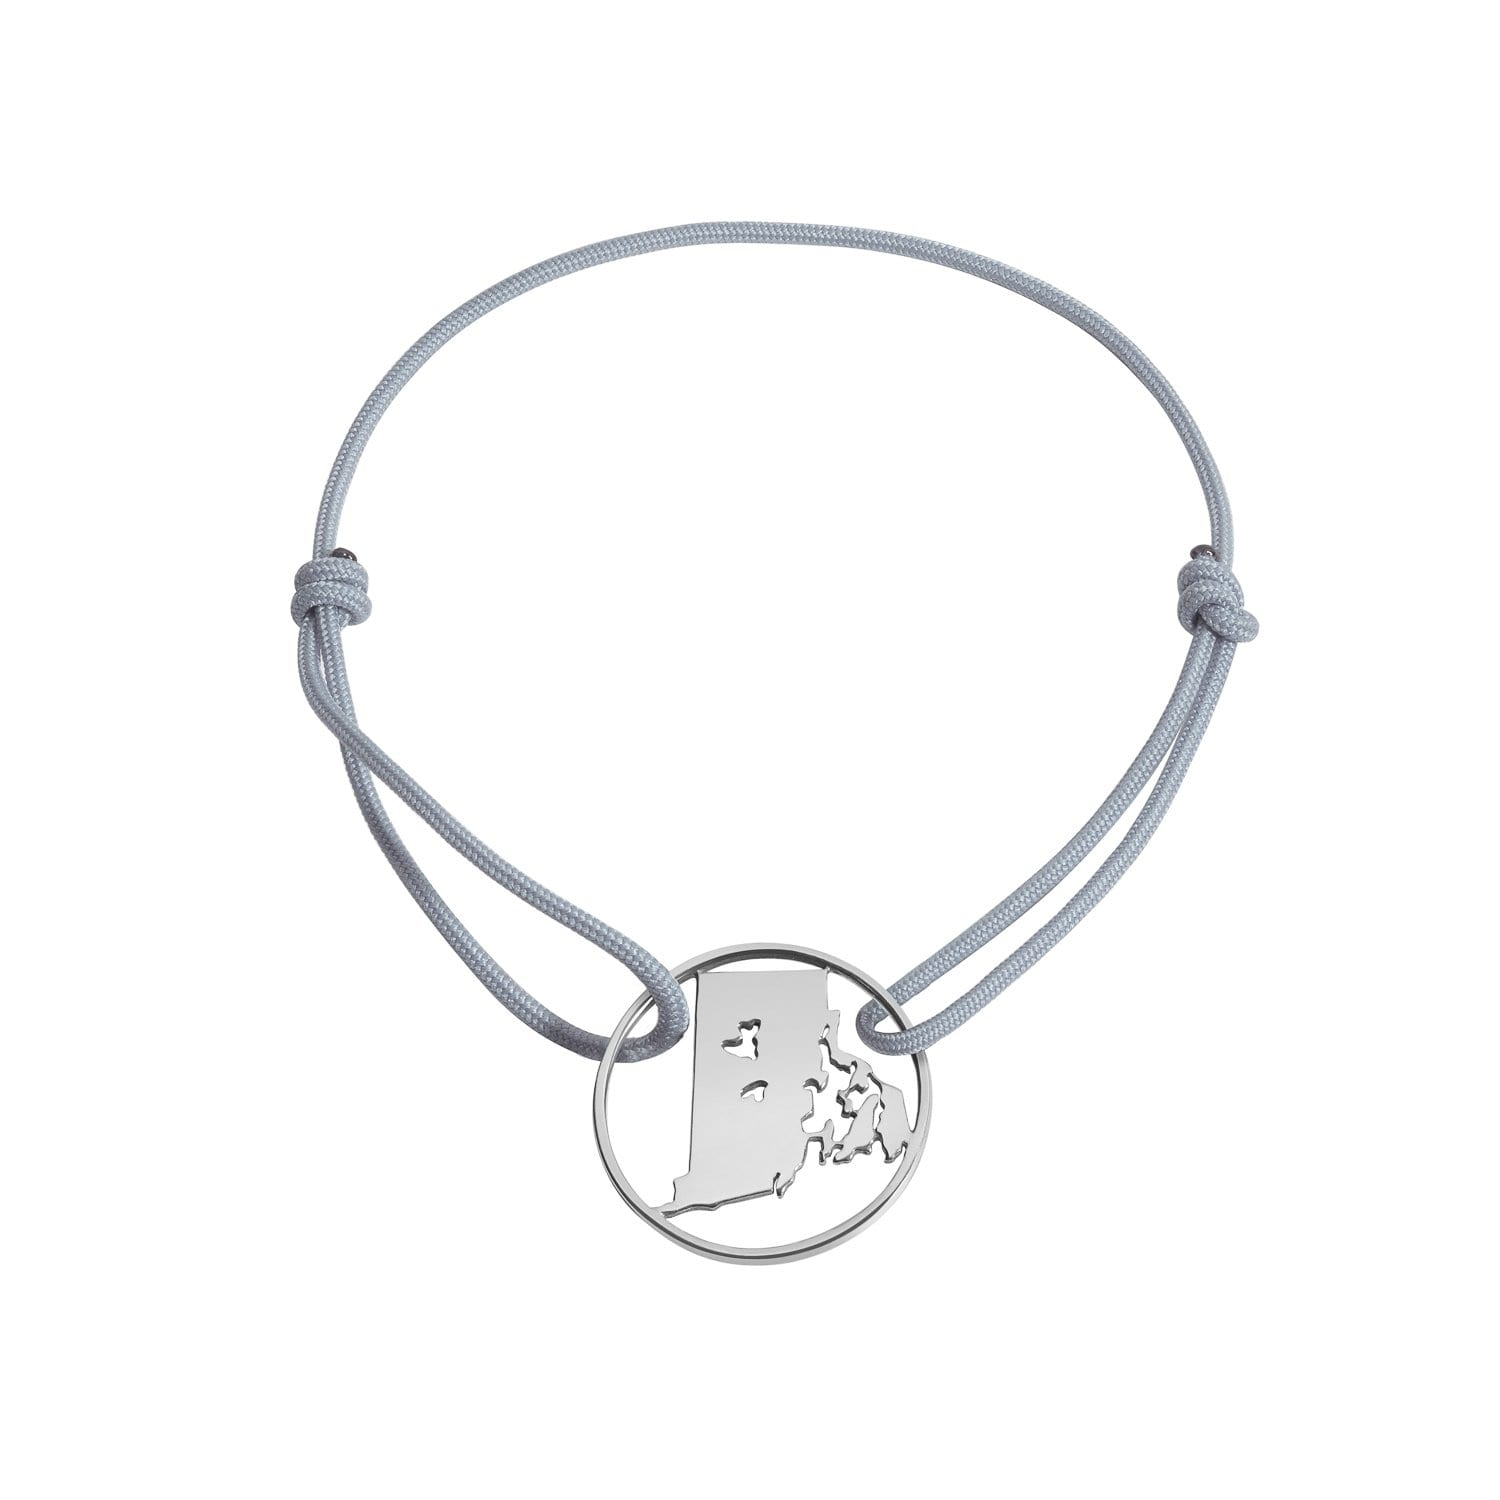 Vincents Fine Jewelry | Catherine Demarchelier | Rhode Island Bracelet | CD Charms